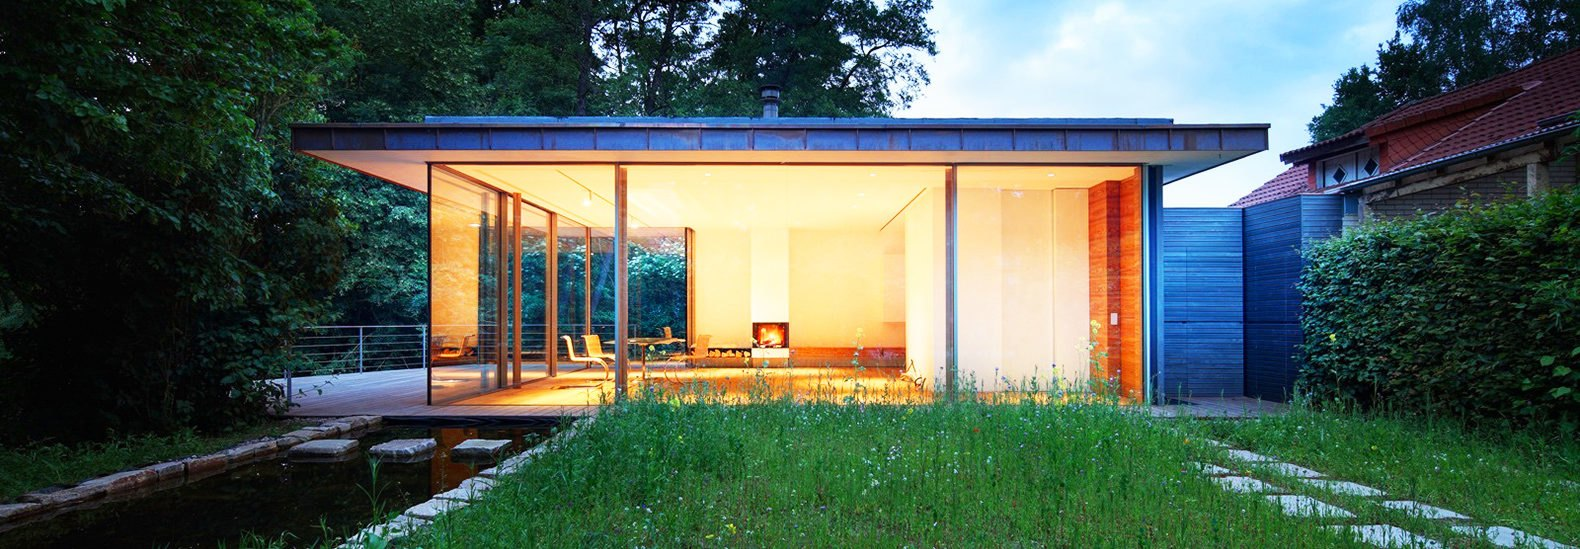 Haus Rheder II tiny home in Germany renovated as a tranquil forest ...